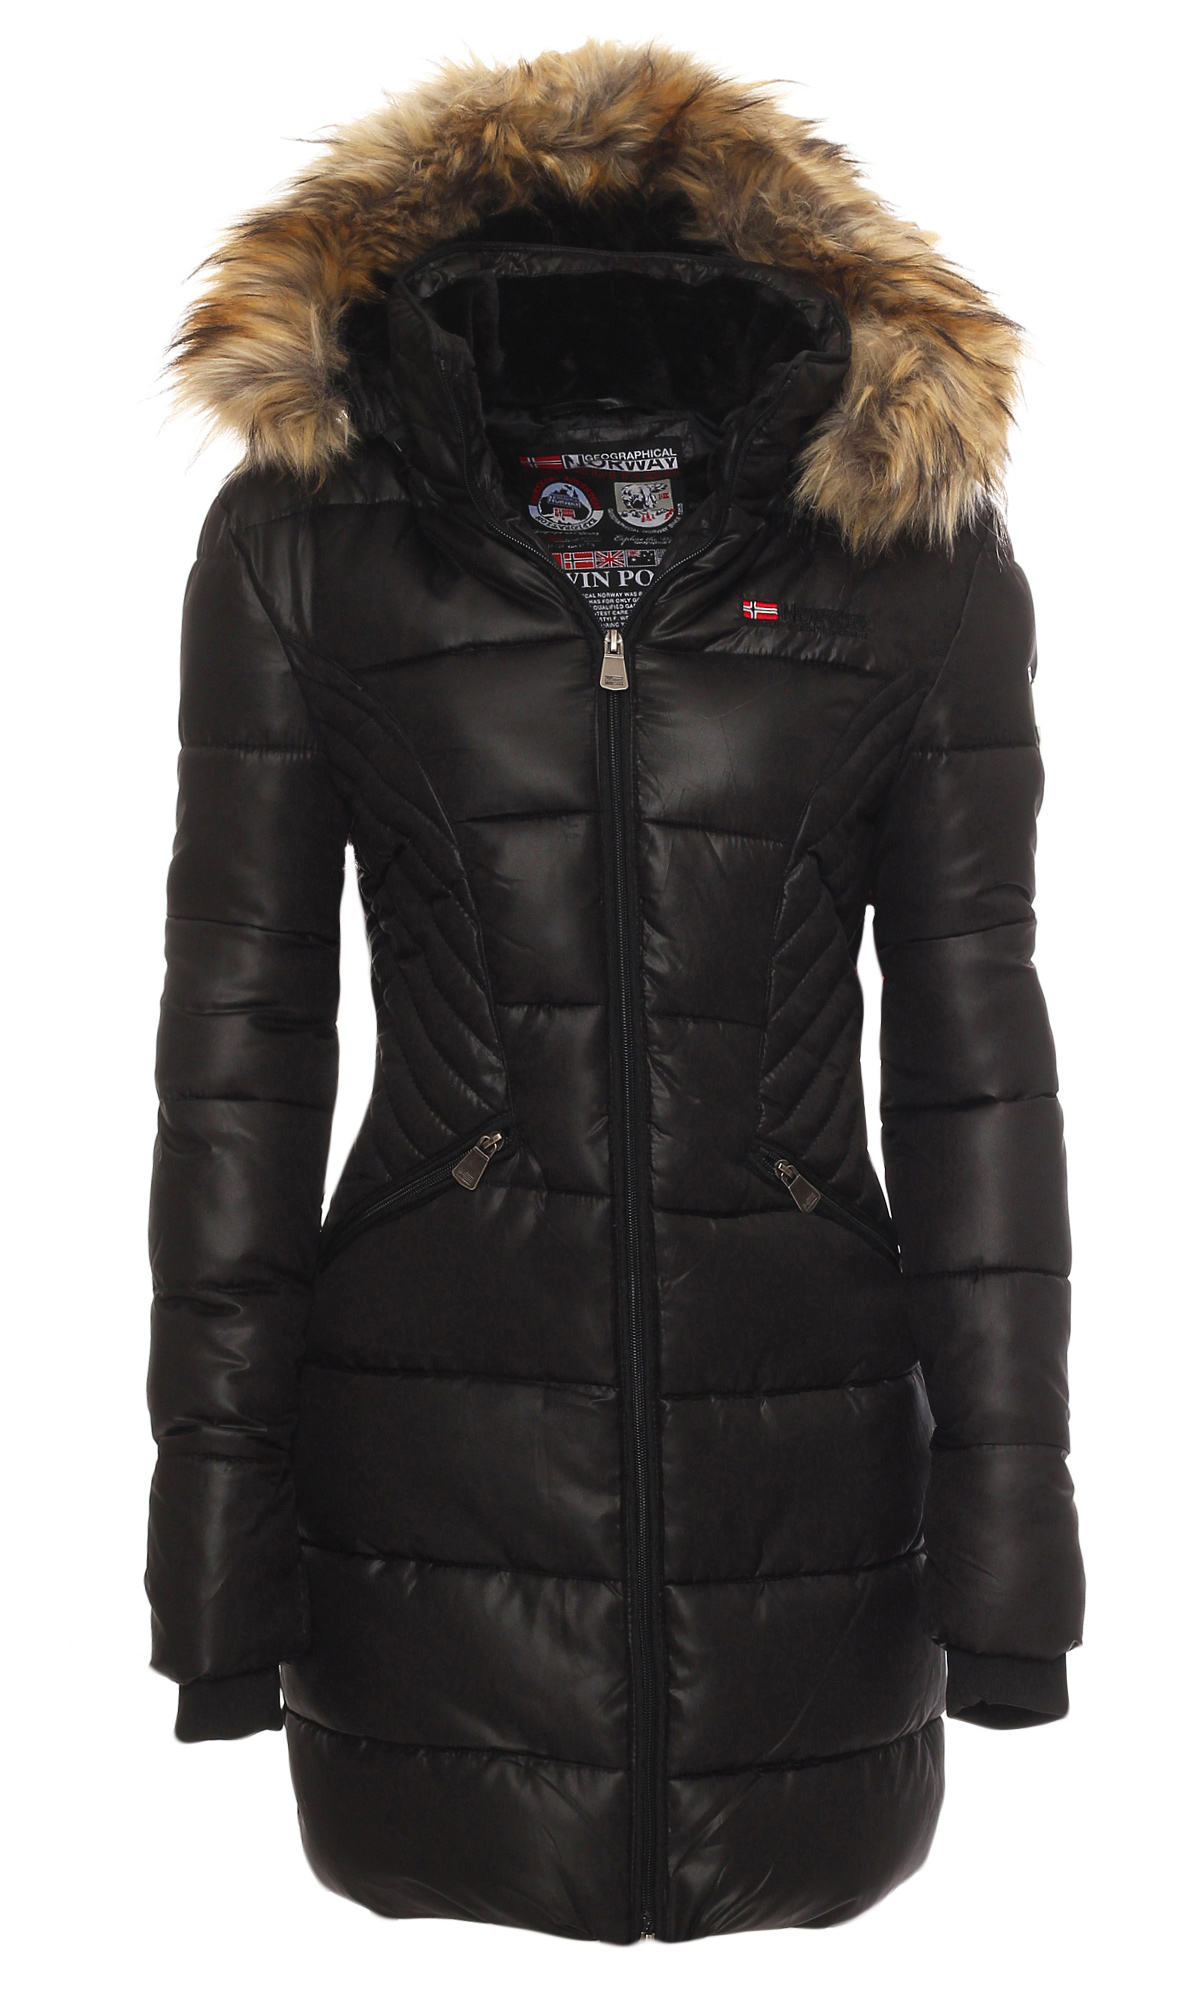 geographical norway ladies winter jacket parka long coat jacket quilted ebay. Black Bedroom Furniture Sets. Home Design Ideas